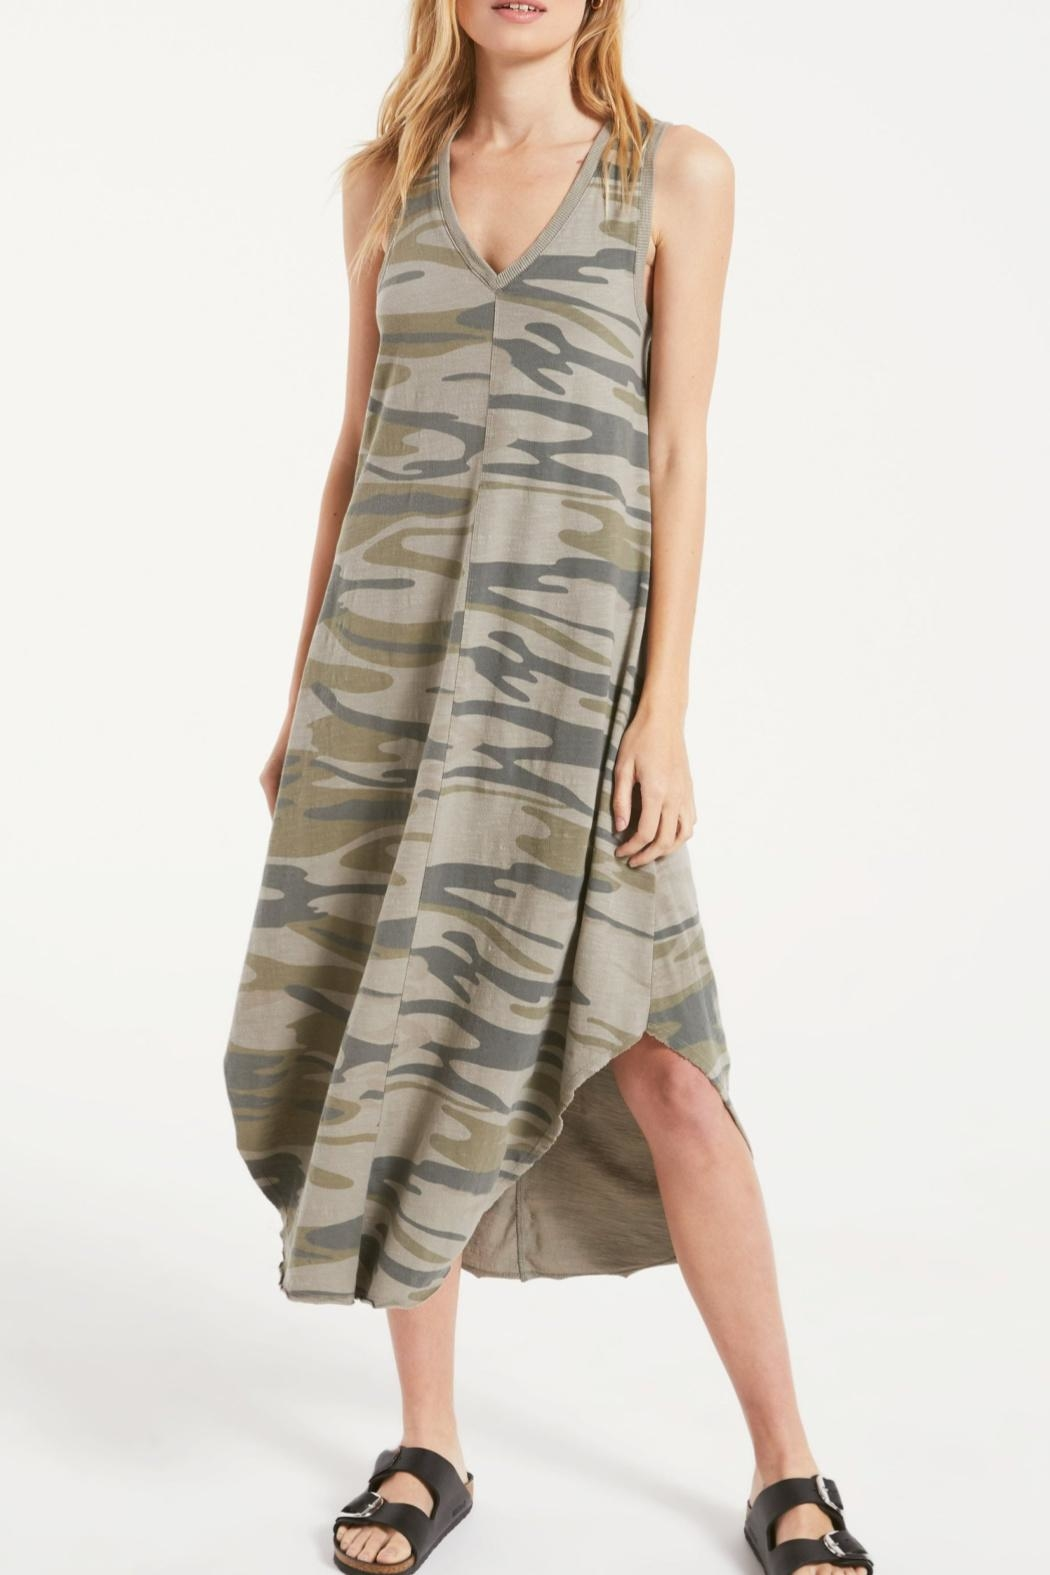 z supply Camo Riverie Dress - Front Cropped Image